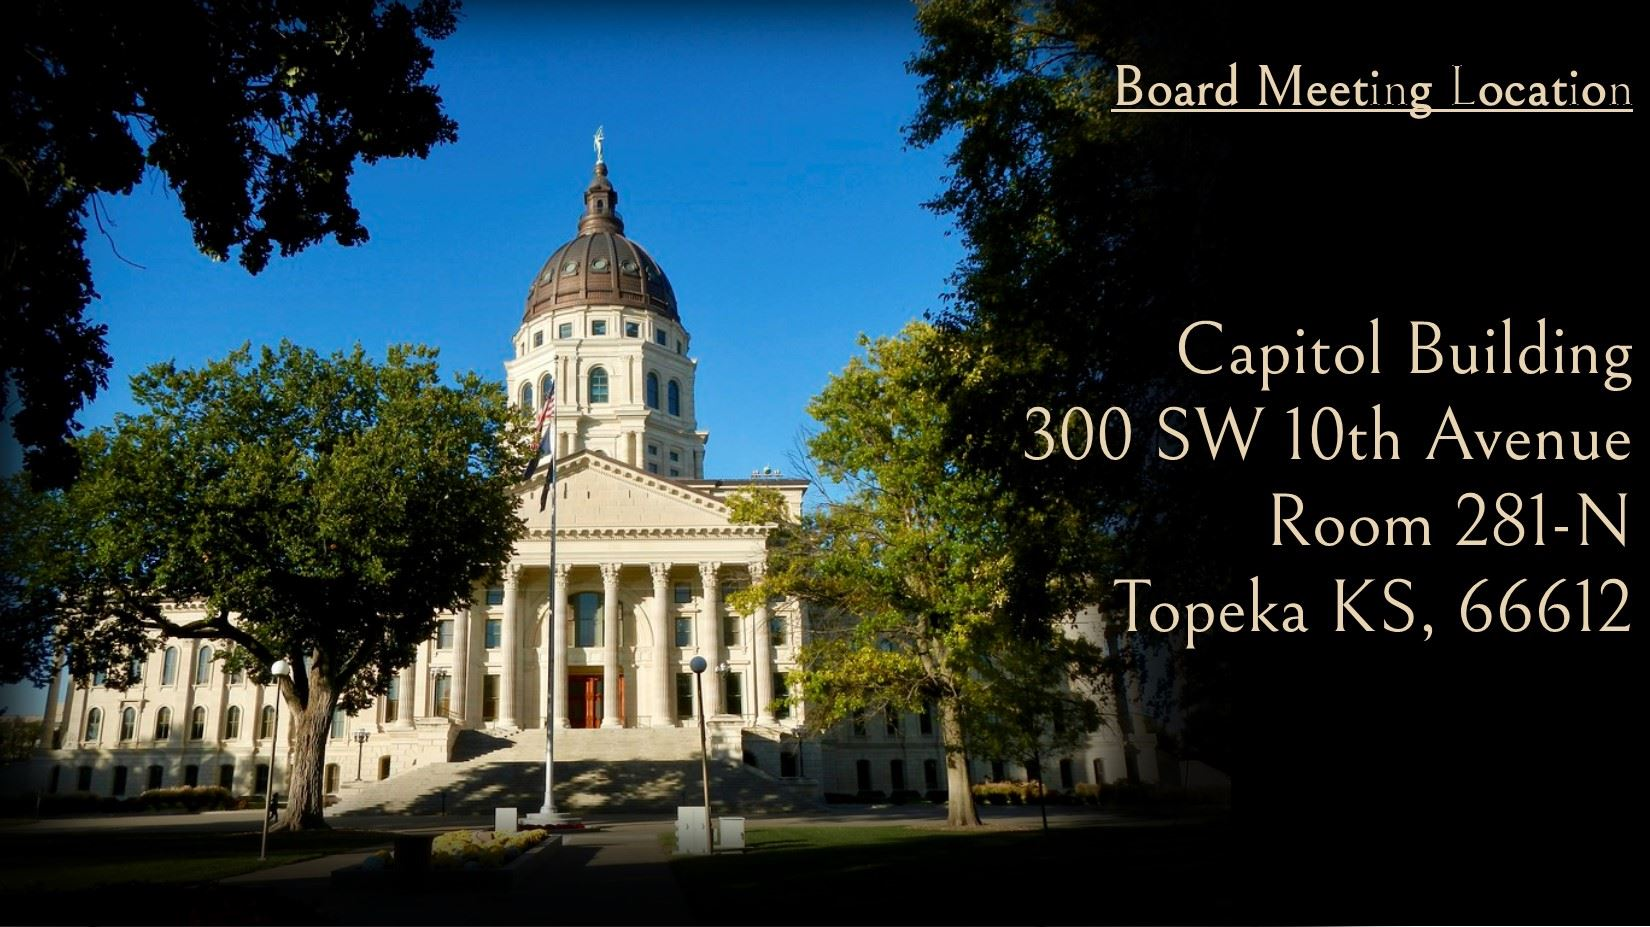 Board Meeting Location Capitol Building 300 south west 10th avenue room 281-north topeka kansas 6661